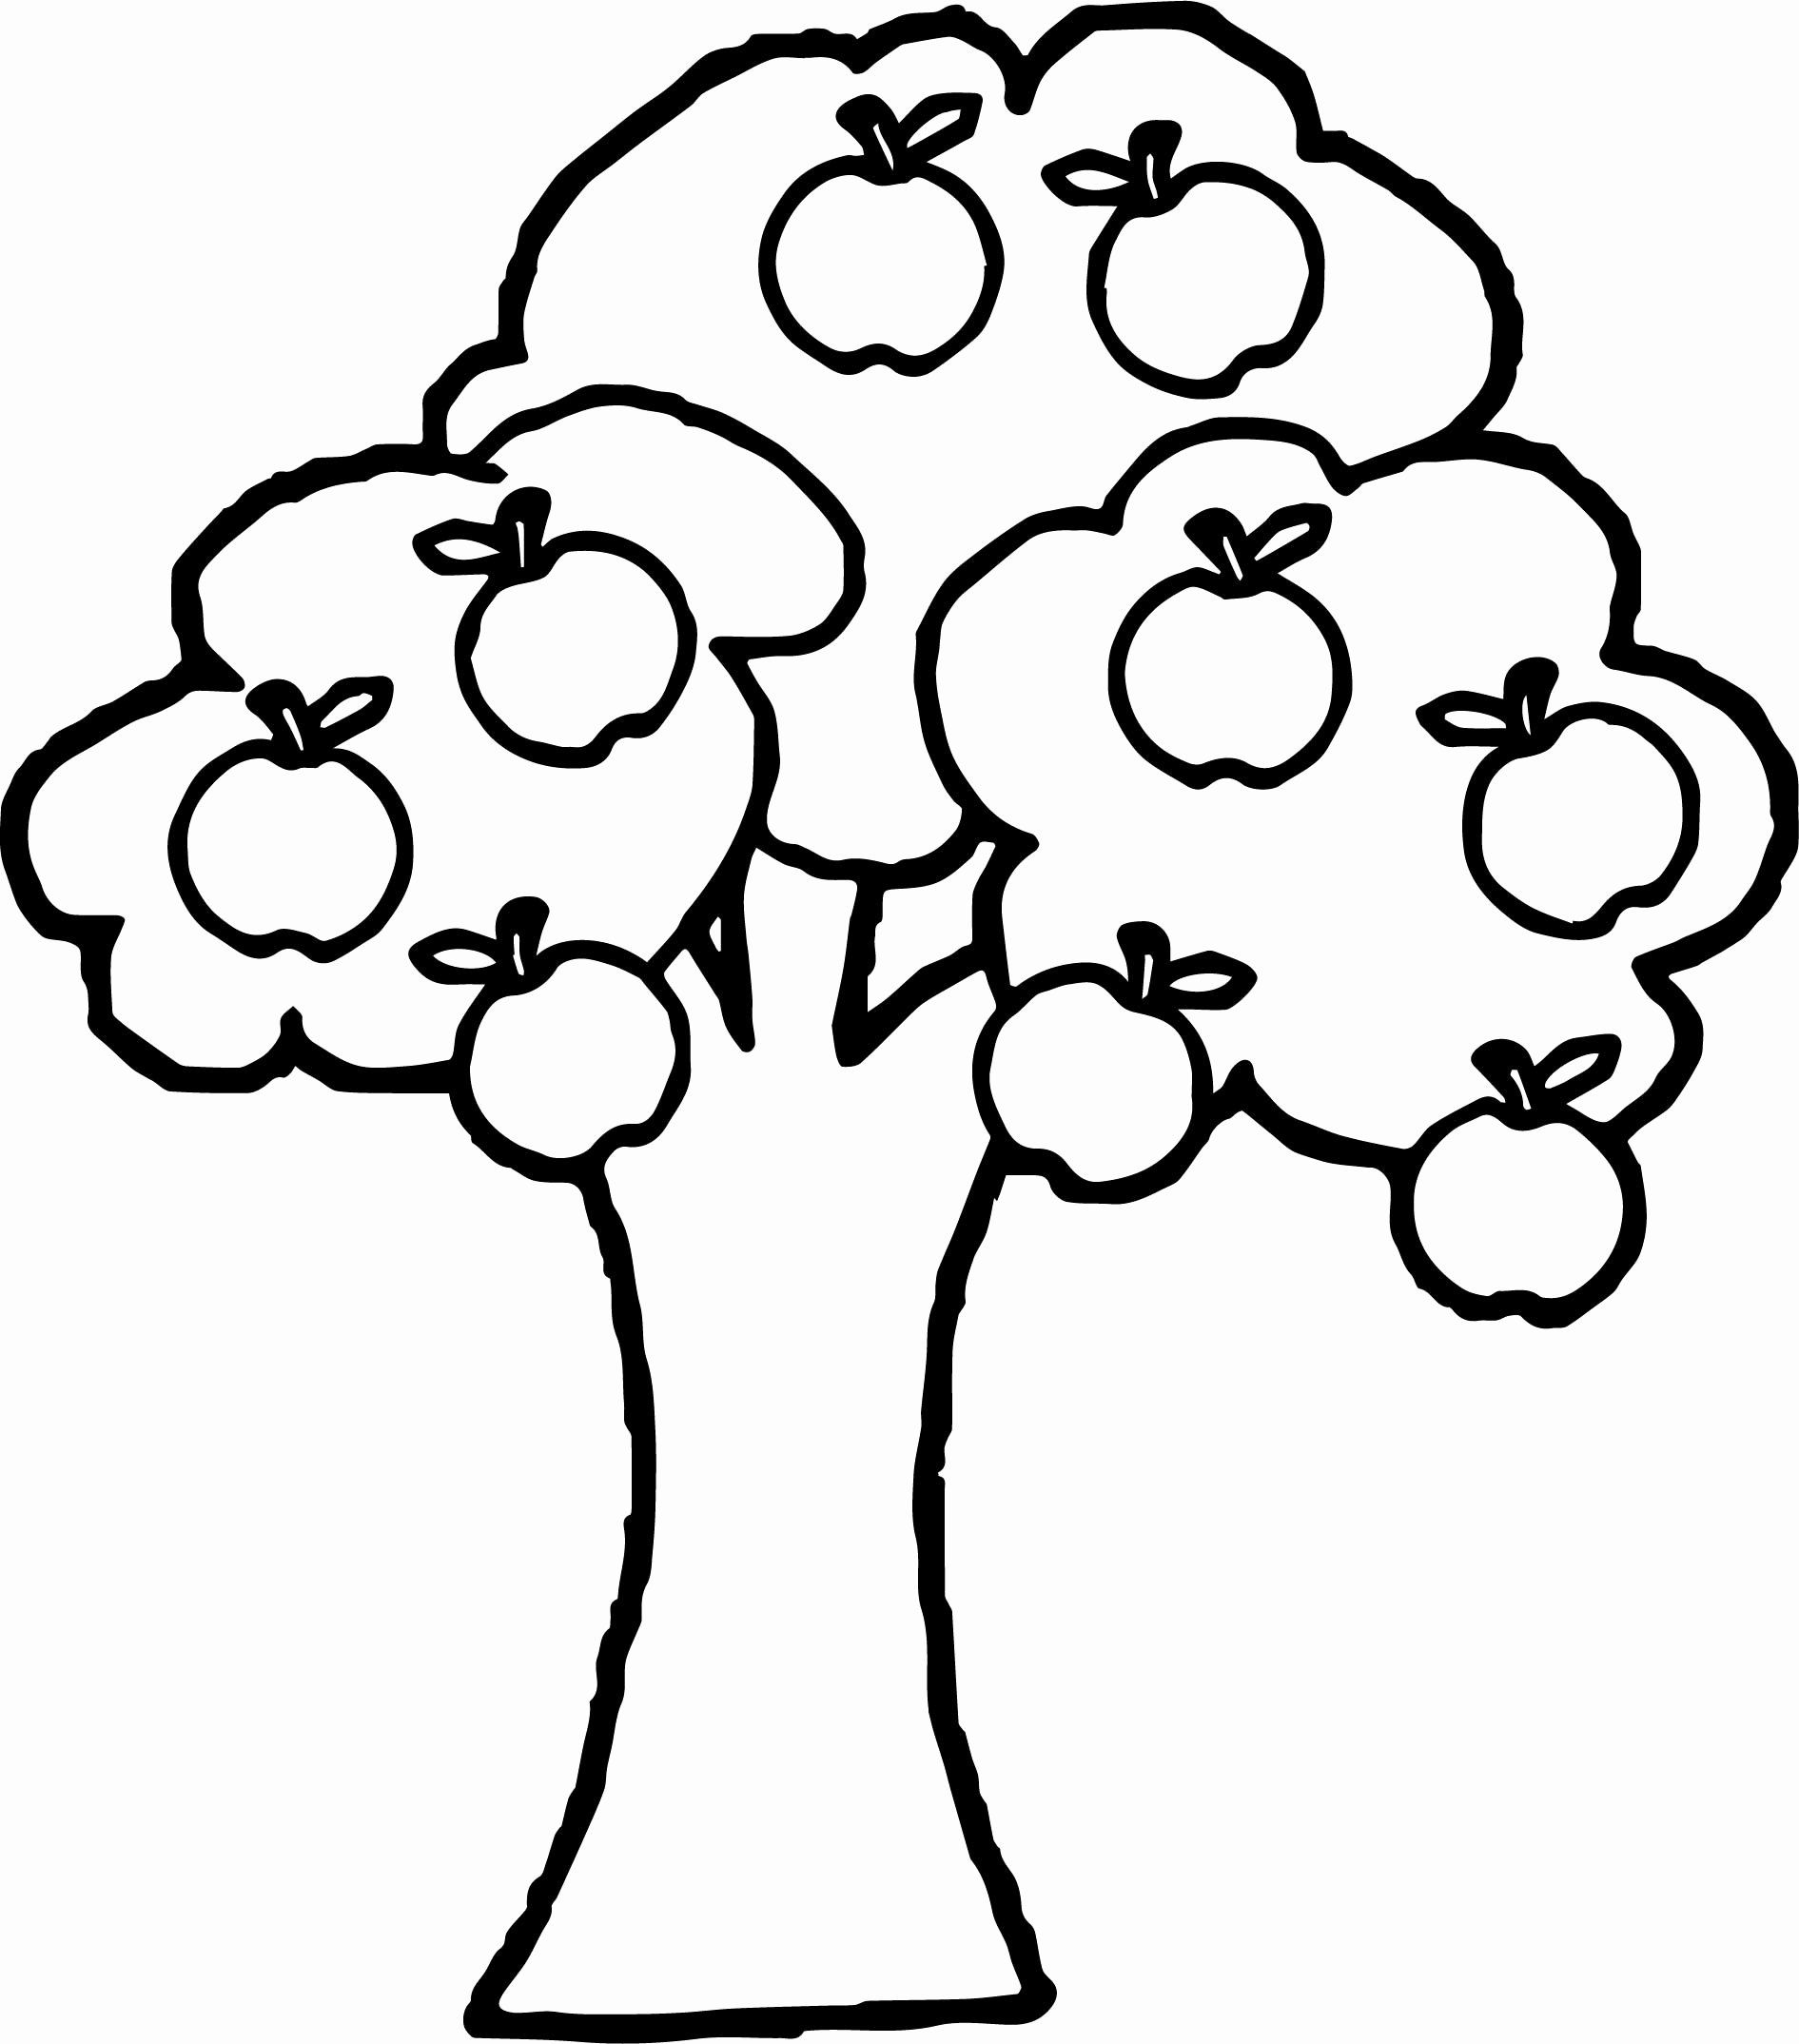 Apple Tree Coloring Page Lovely Apple Tree Drawing Apple Coloring Pages Tree Coloring Page Fruit Coloring Pages